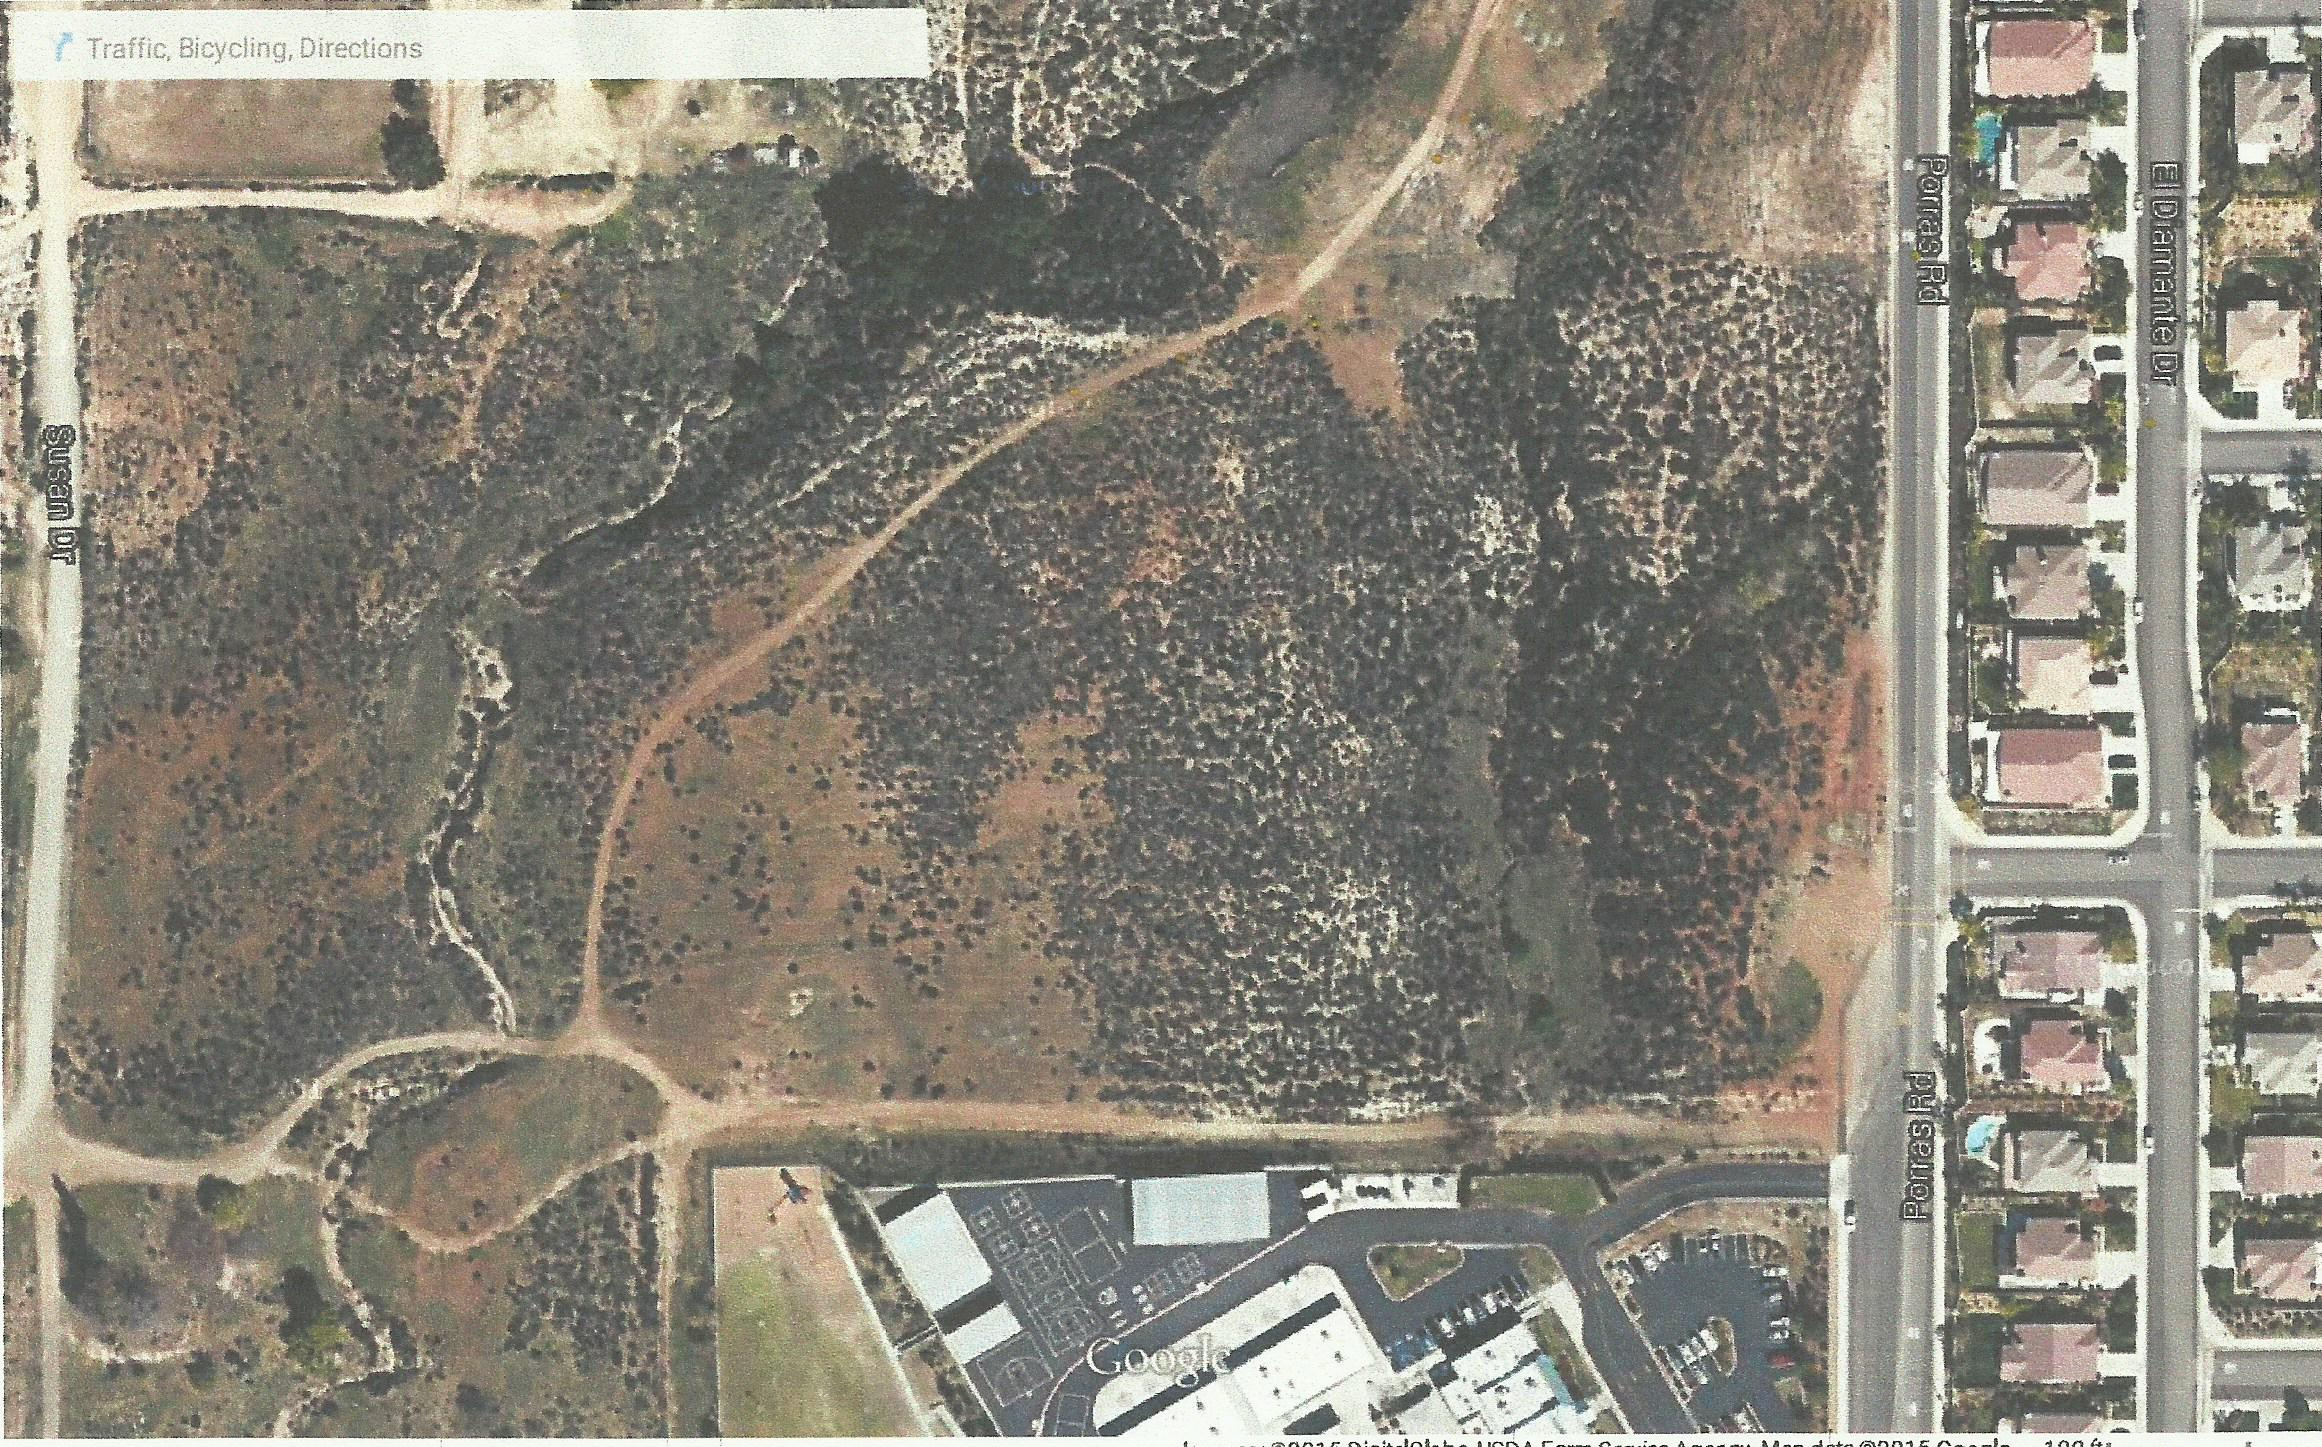 Park land on Porras Rd. (Wildomar Trail to some)